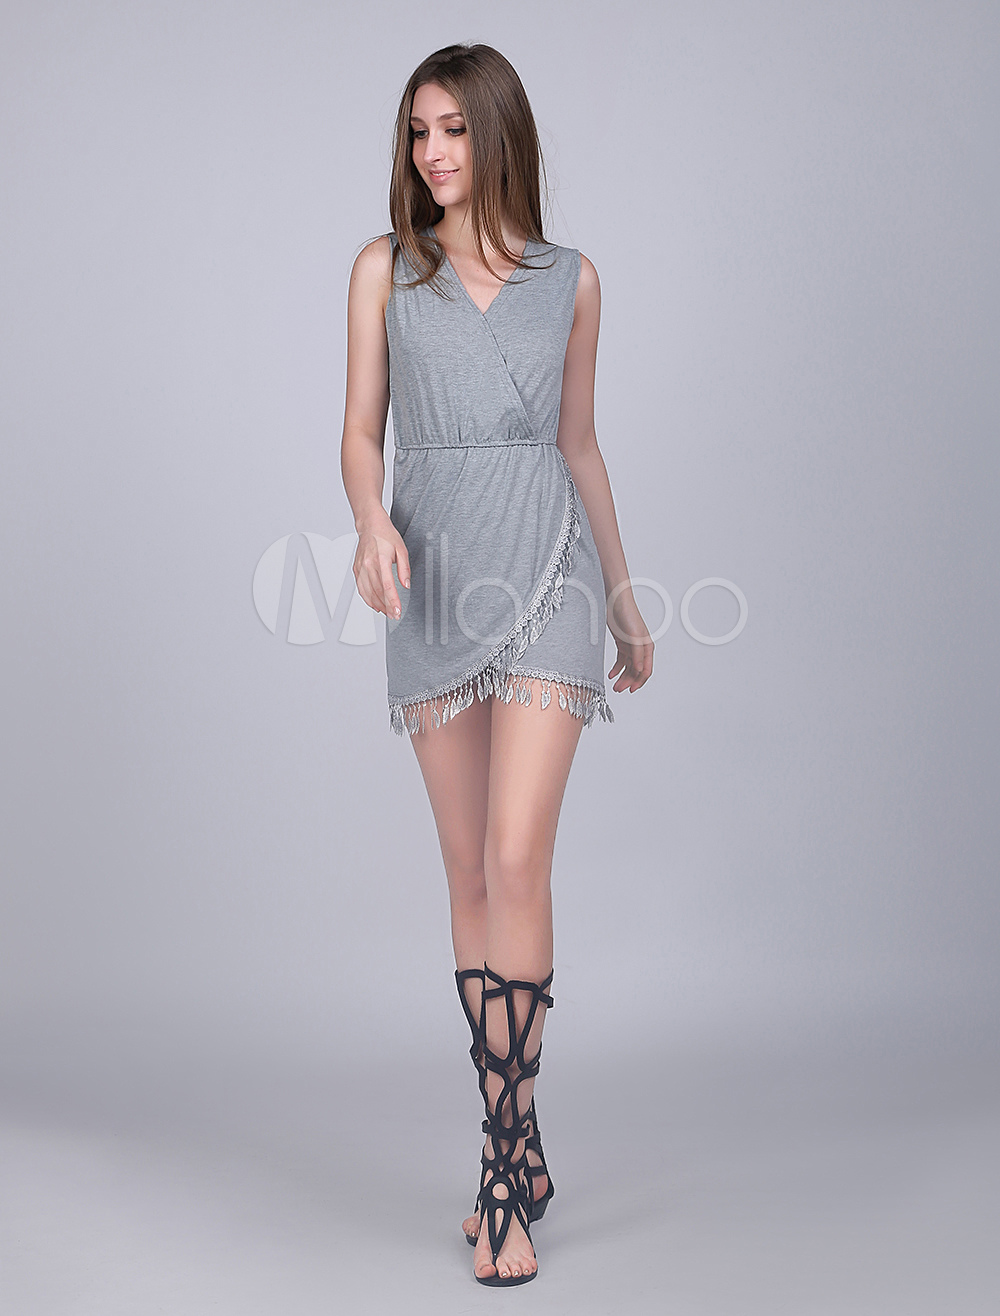 Gray Cotton Blend Wrap Summer Dress for Women March 2018. New collection, free shipping.